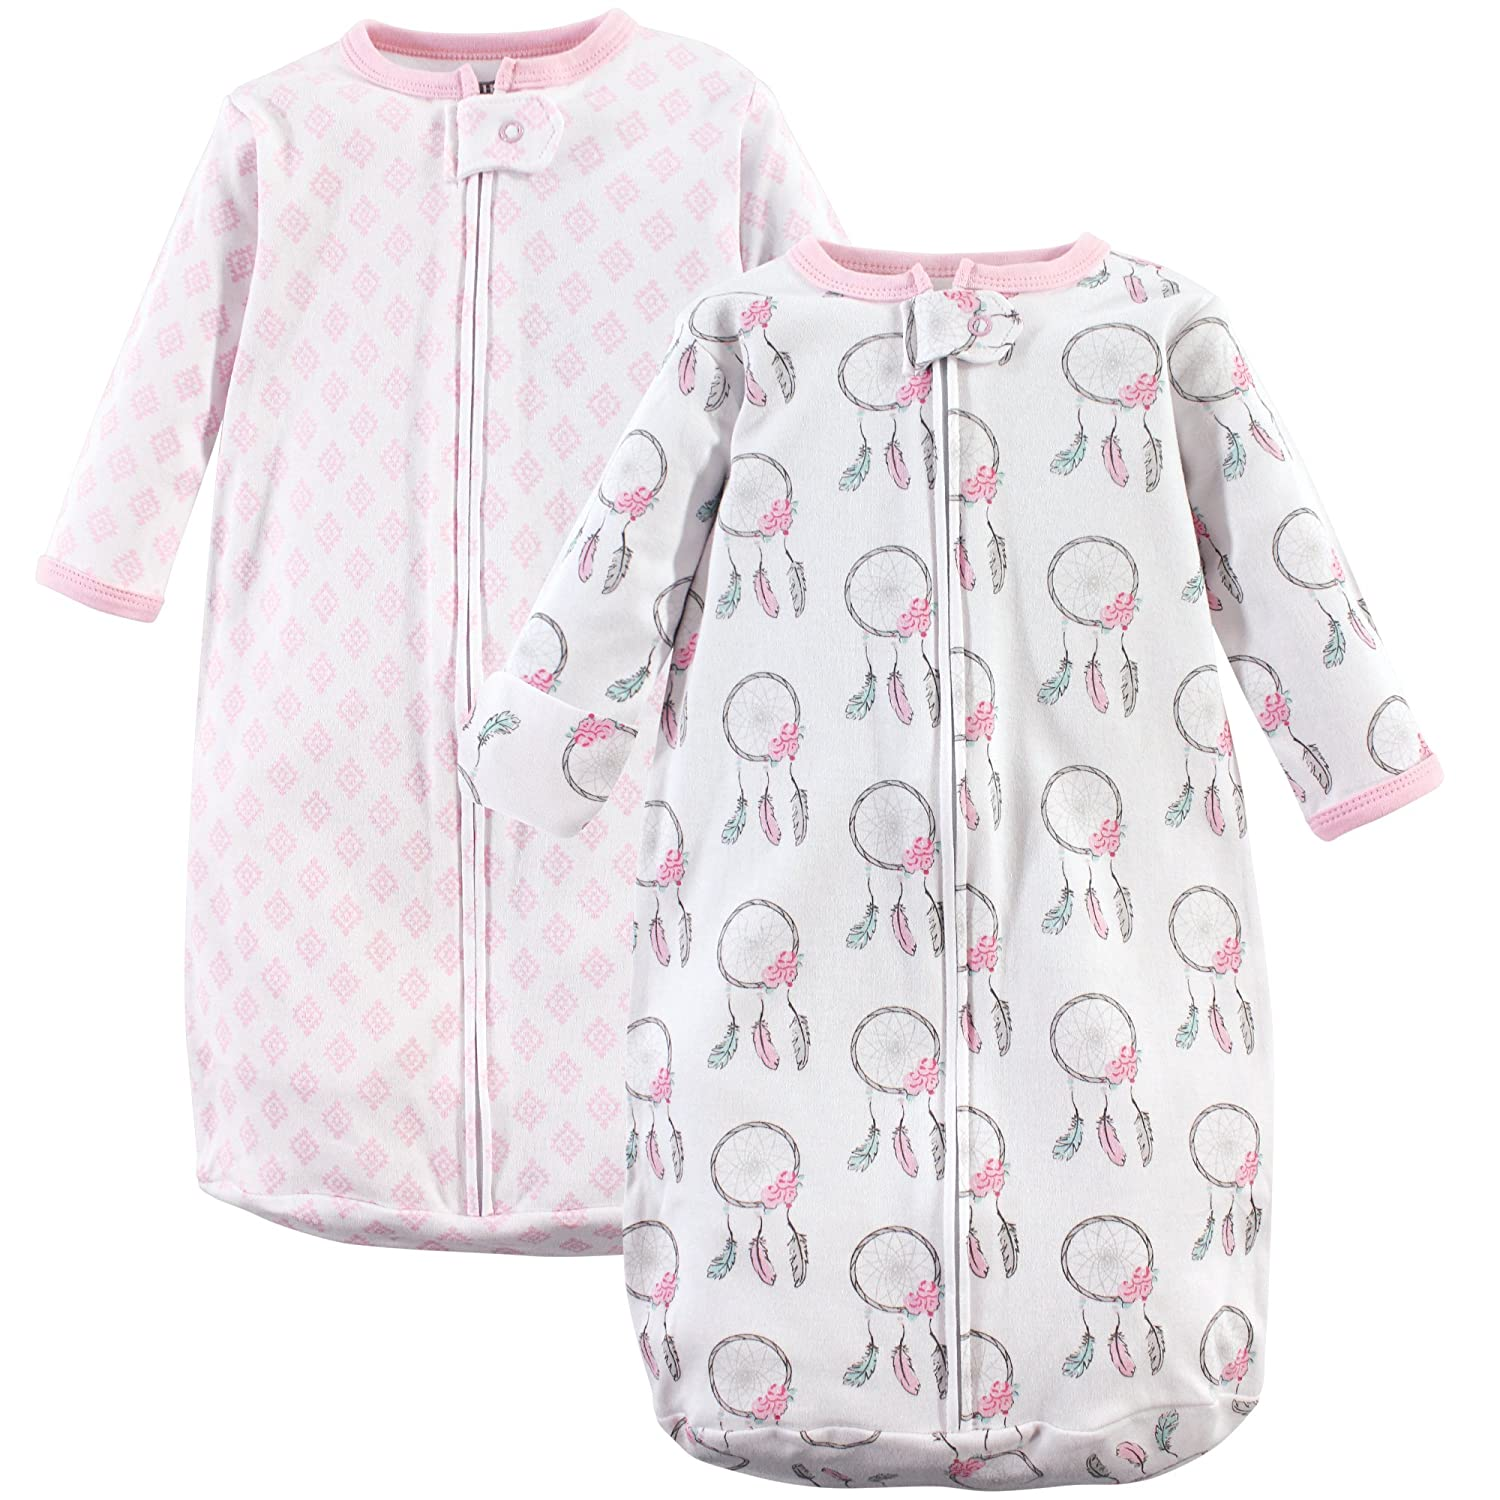 Hudson Baby Baby-Girls Baby Wearable Safe Sleep Long Sleeve Cotton Sleeping Bags Airplanes 2Pk 0-3 Months 52103